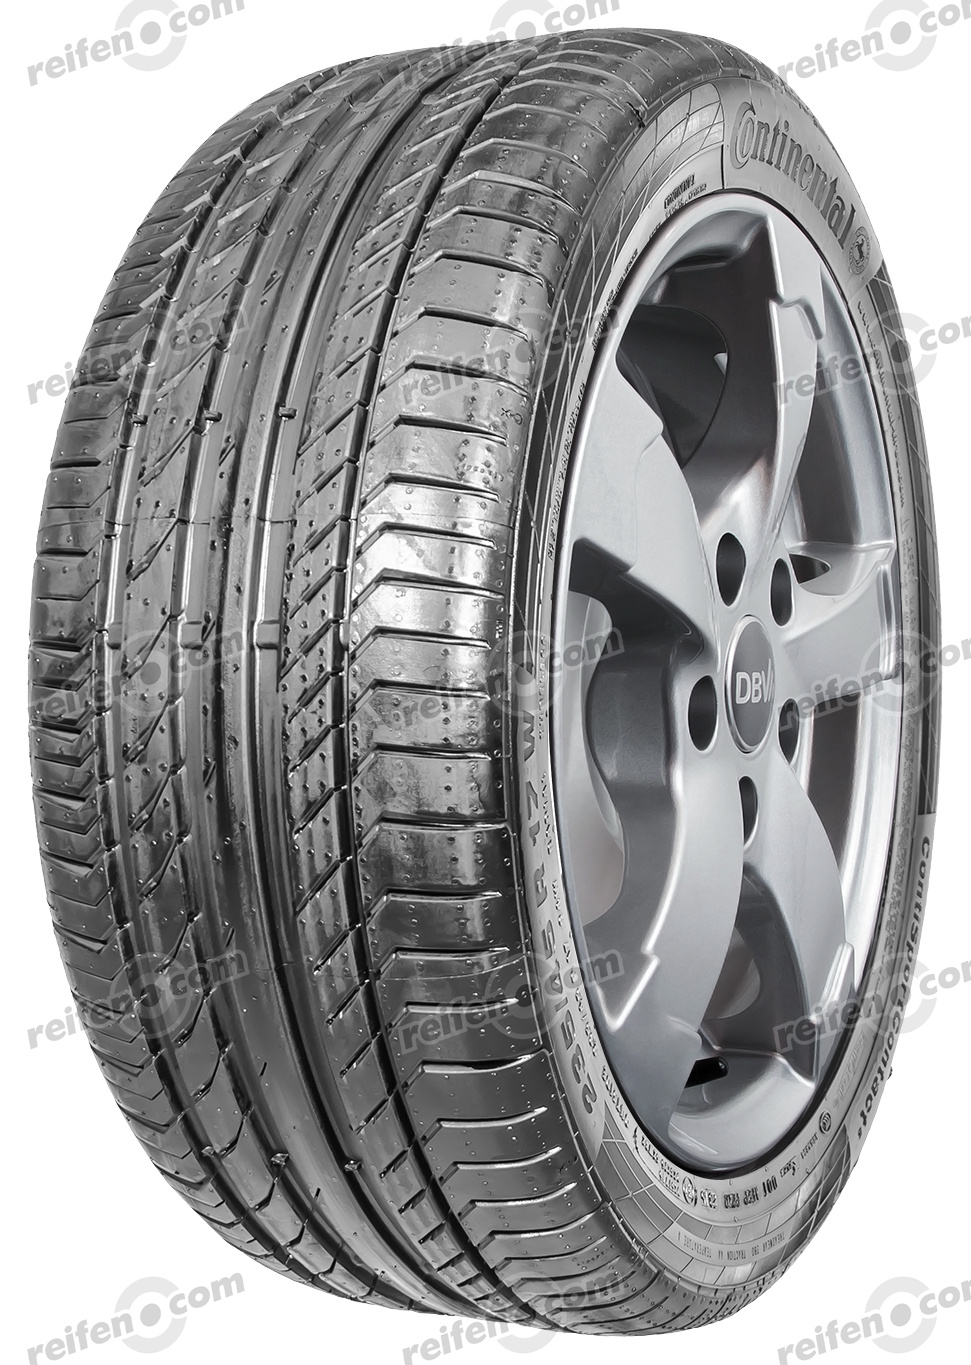 255/50 R19 103W SportContact 5 SUV SSR MO ML BSW  SportContact 5 SUV SSR MO ML BSW